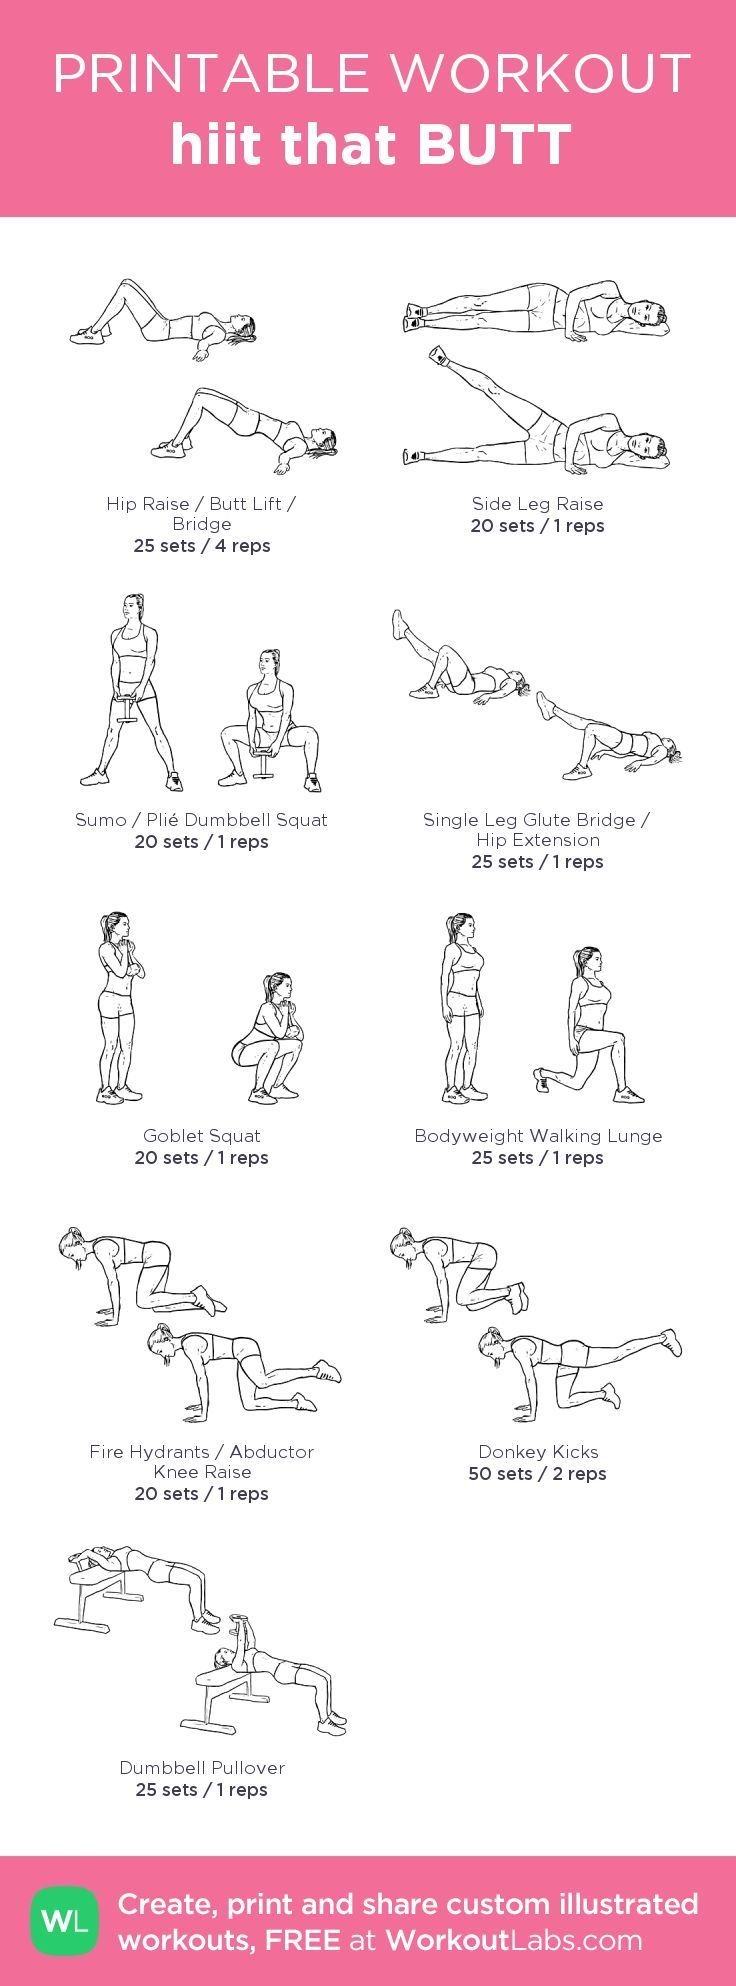 hiit that BUTT – my custom workout created at http://WorkoutLabs.com • Click through to download as printable PDF! #customworkout